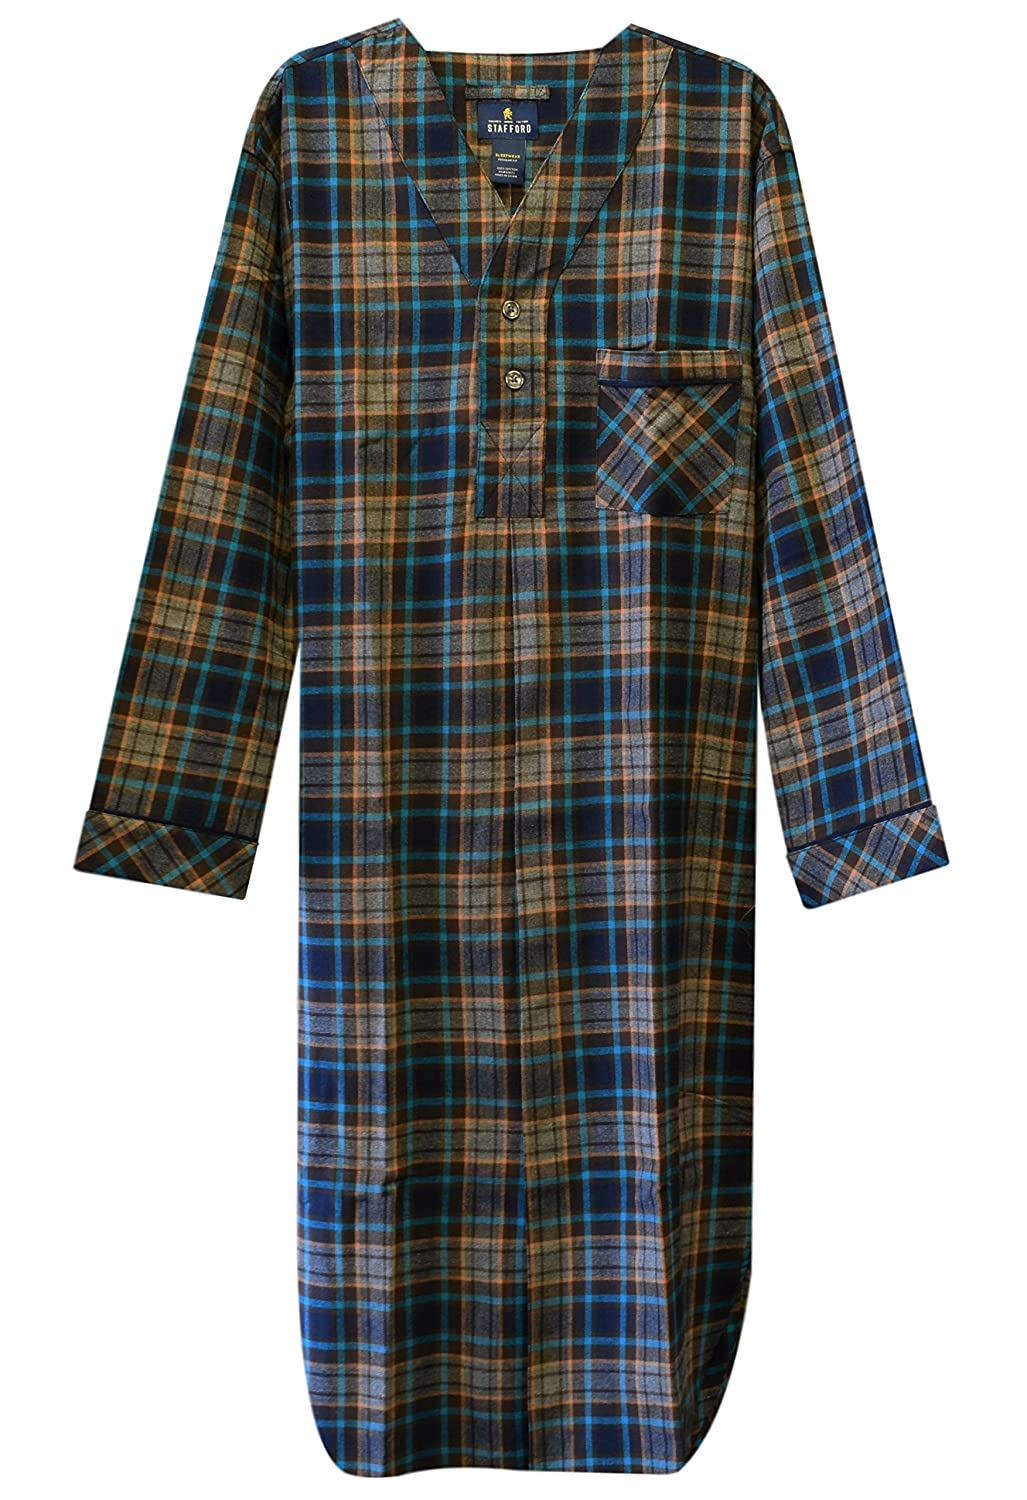 Stafford Men's Flannel Nightshirt P83957